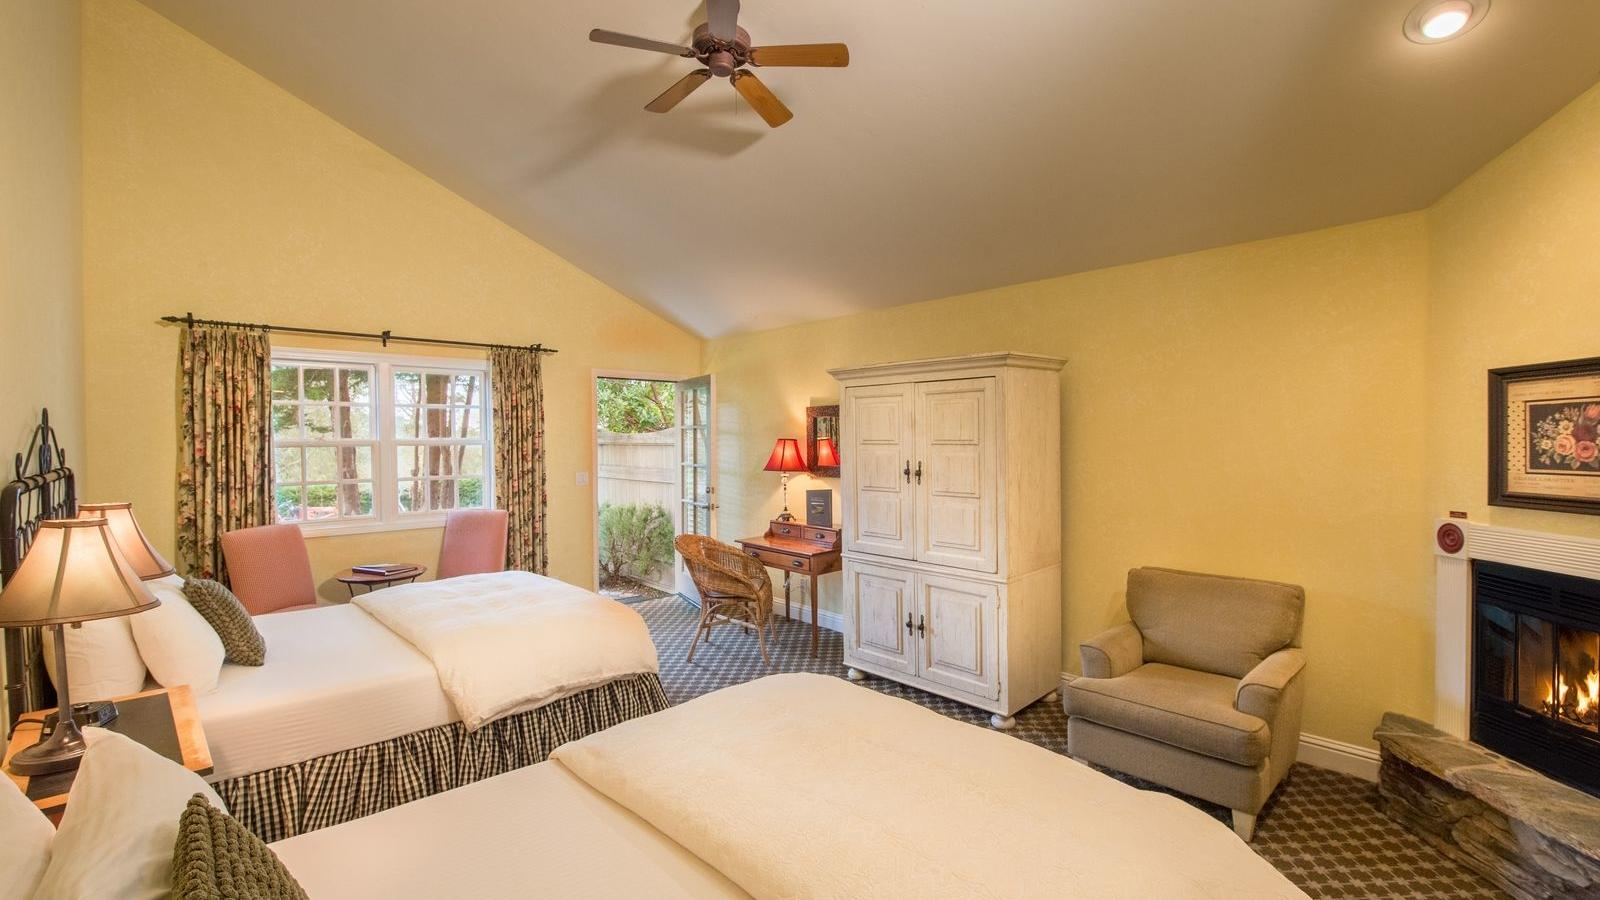 Superior Room at Cambria Pines Lodge